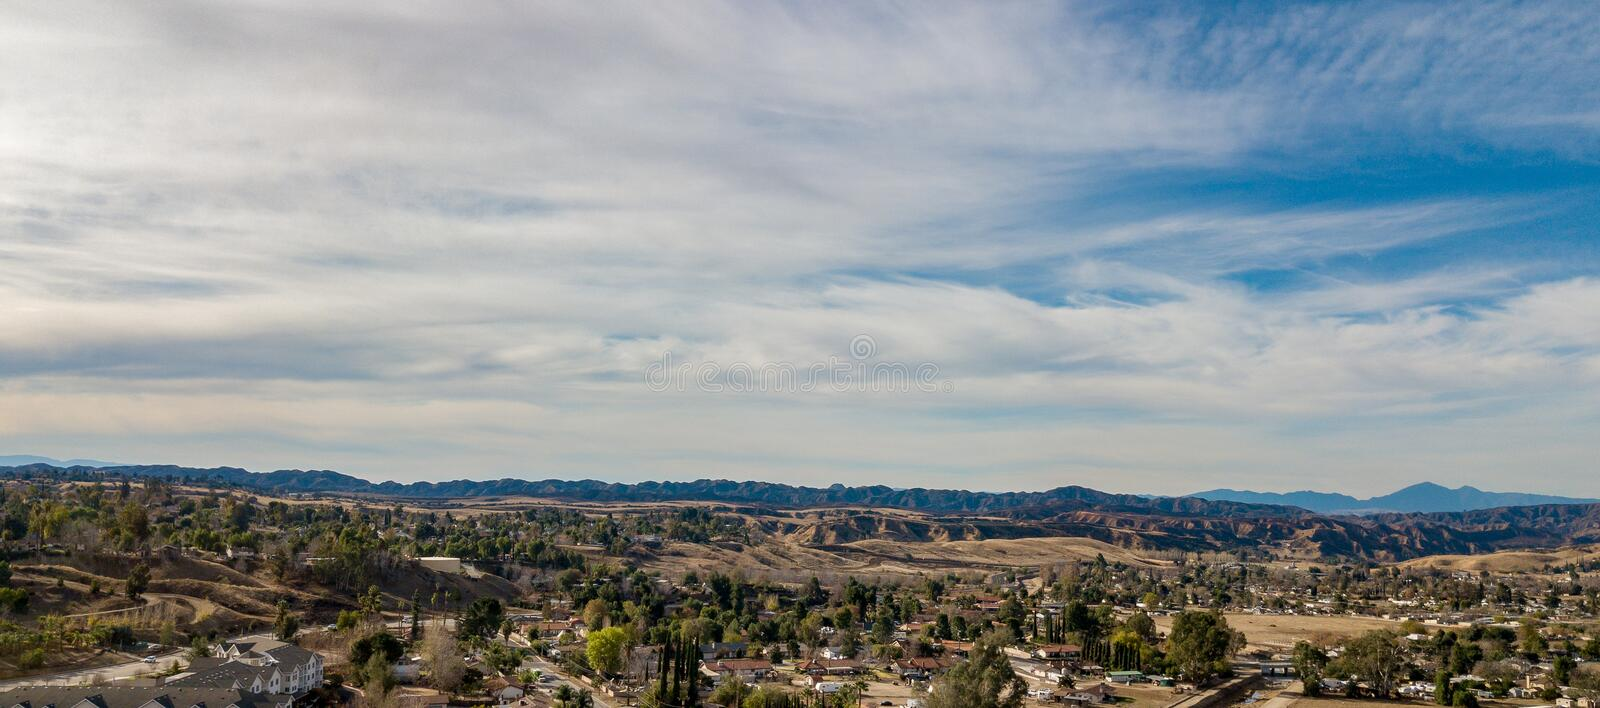 Aerial View of The Yucaipa Badlands, Southern California royalty free stock image